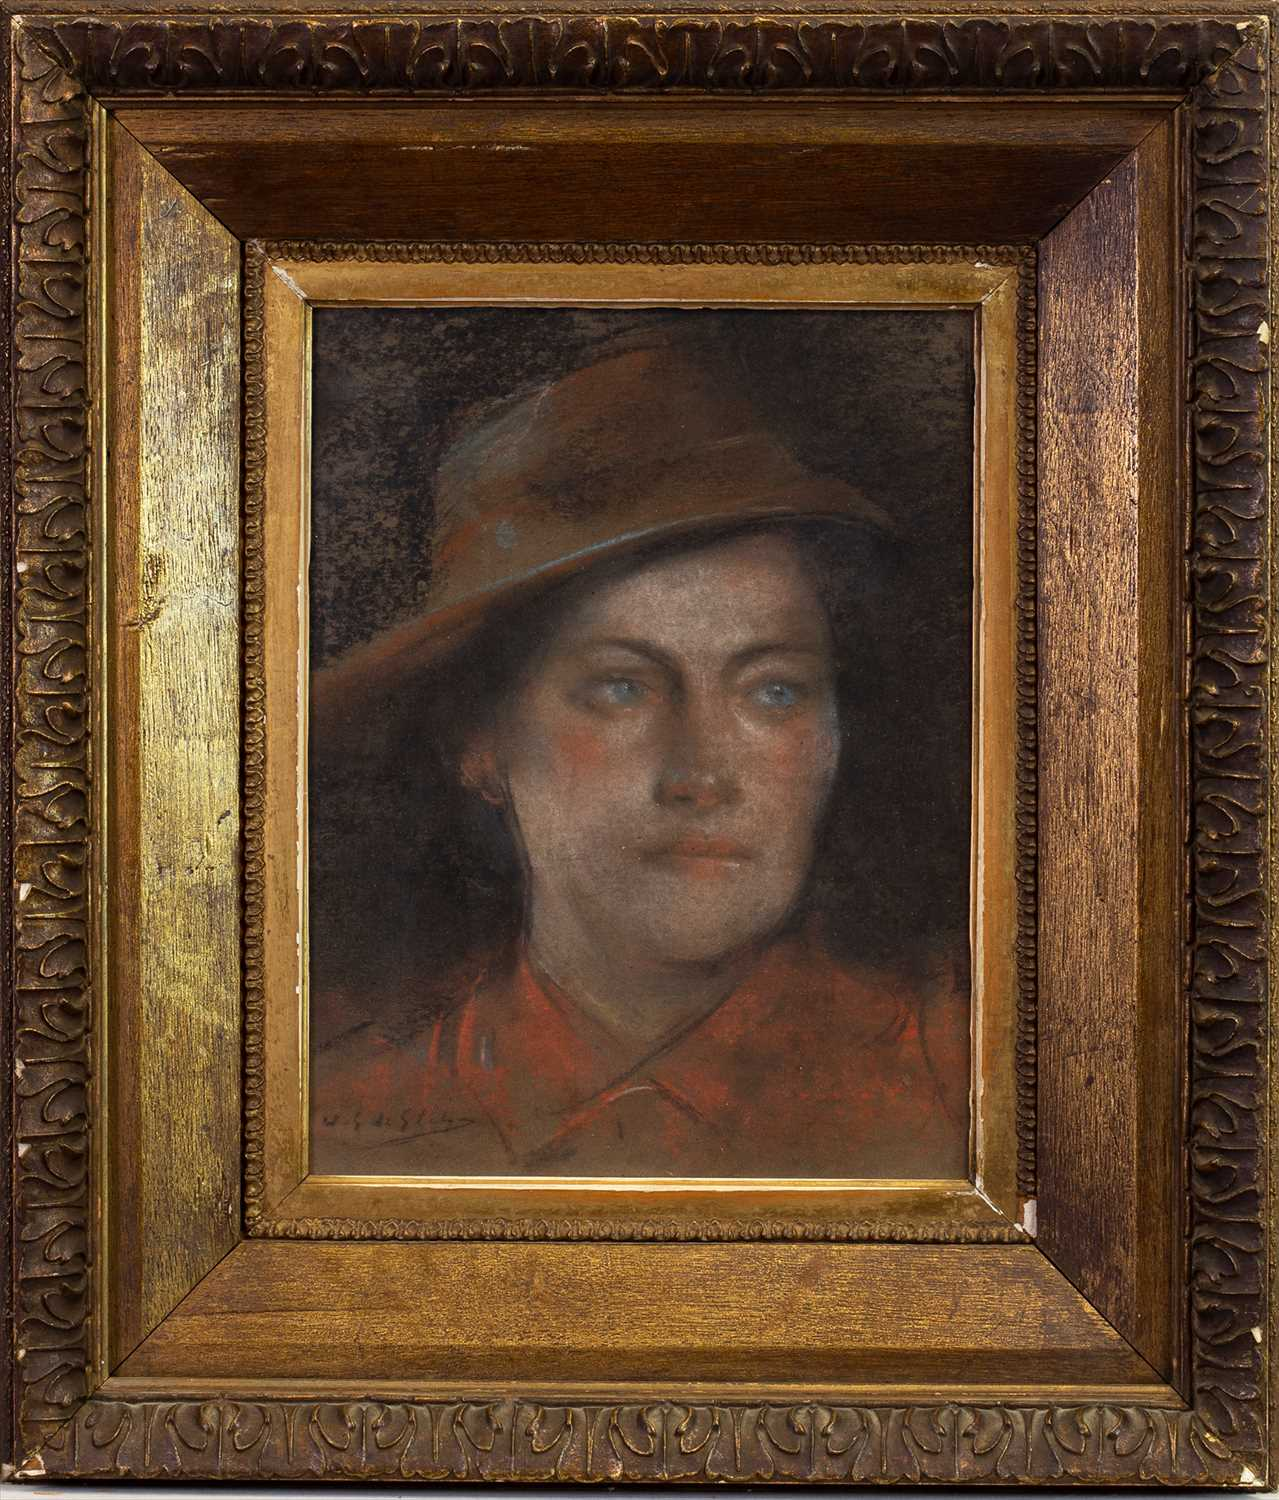 Lot 421-PORTRAIT OF A YOUNG GIRL, A PASTEL BY WILFRED GABRIEL DE GLEHN